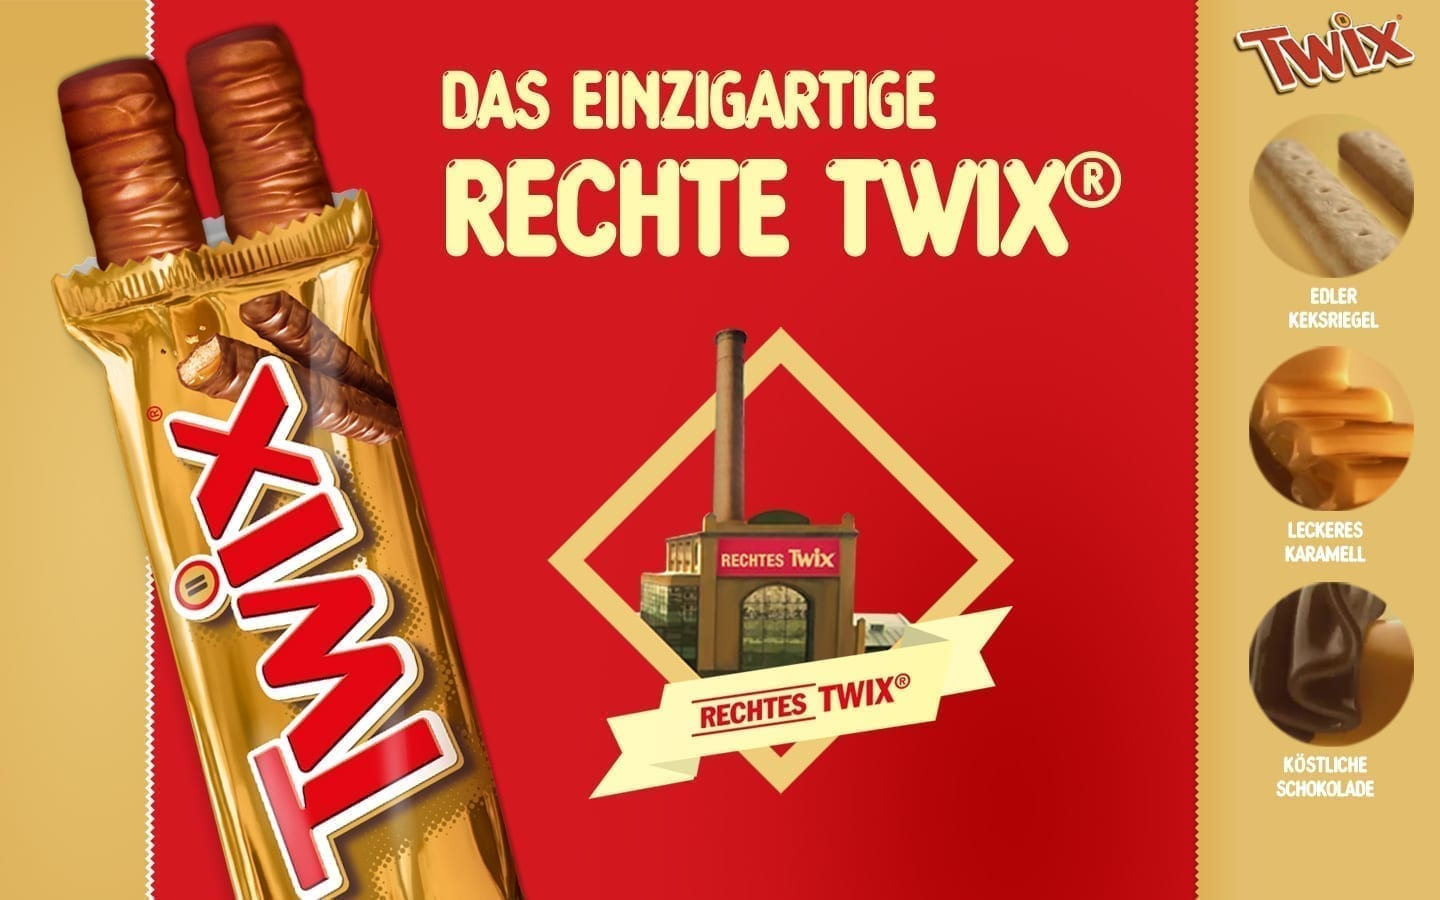 facts about twix